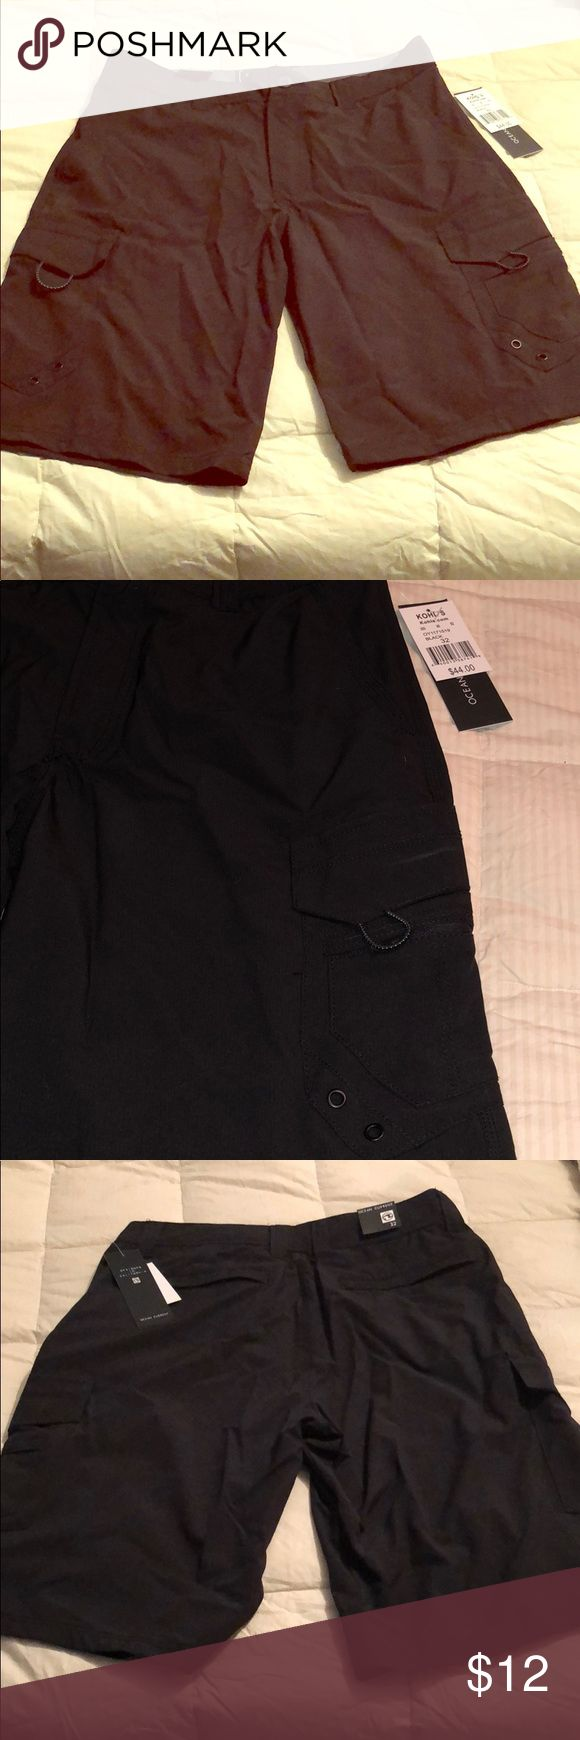 Ocean Current Black Board/Cargo Shorts New with tags! Double as swim trunks if desired Ocean Current Shorts Cargo